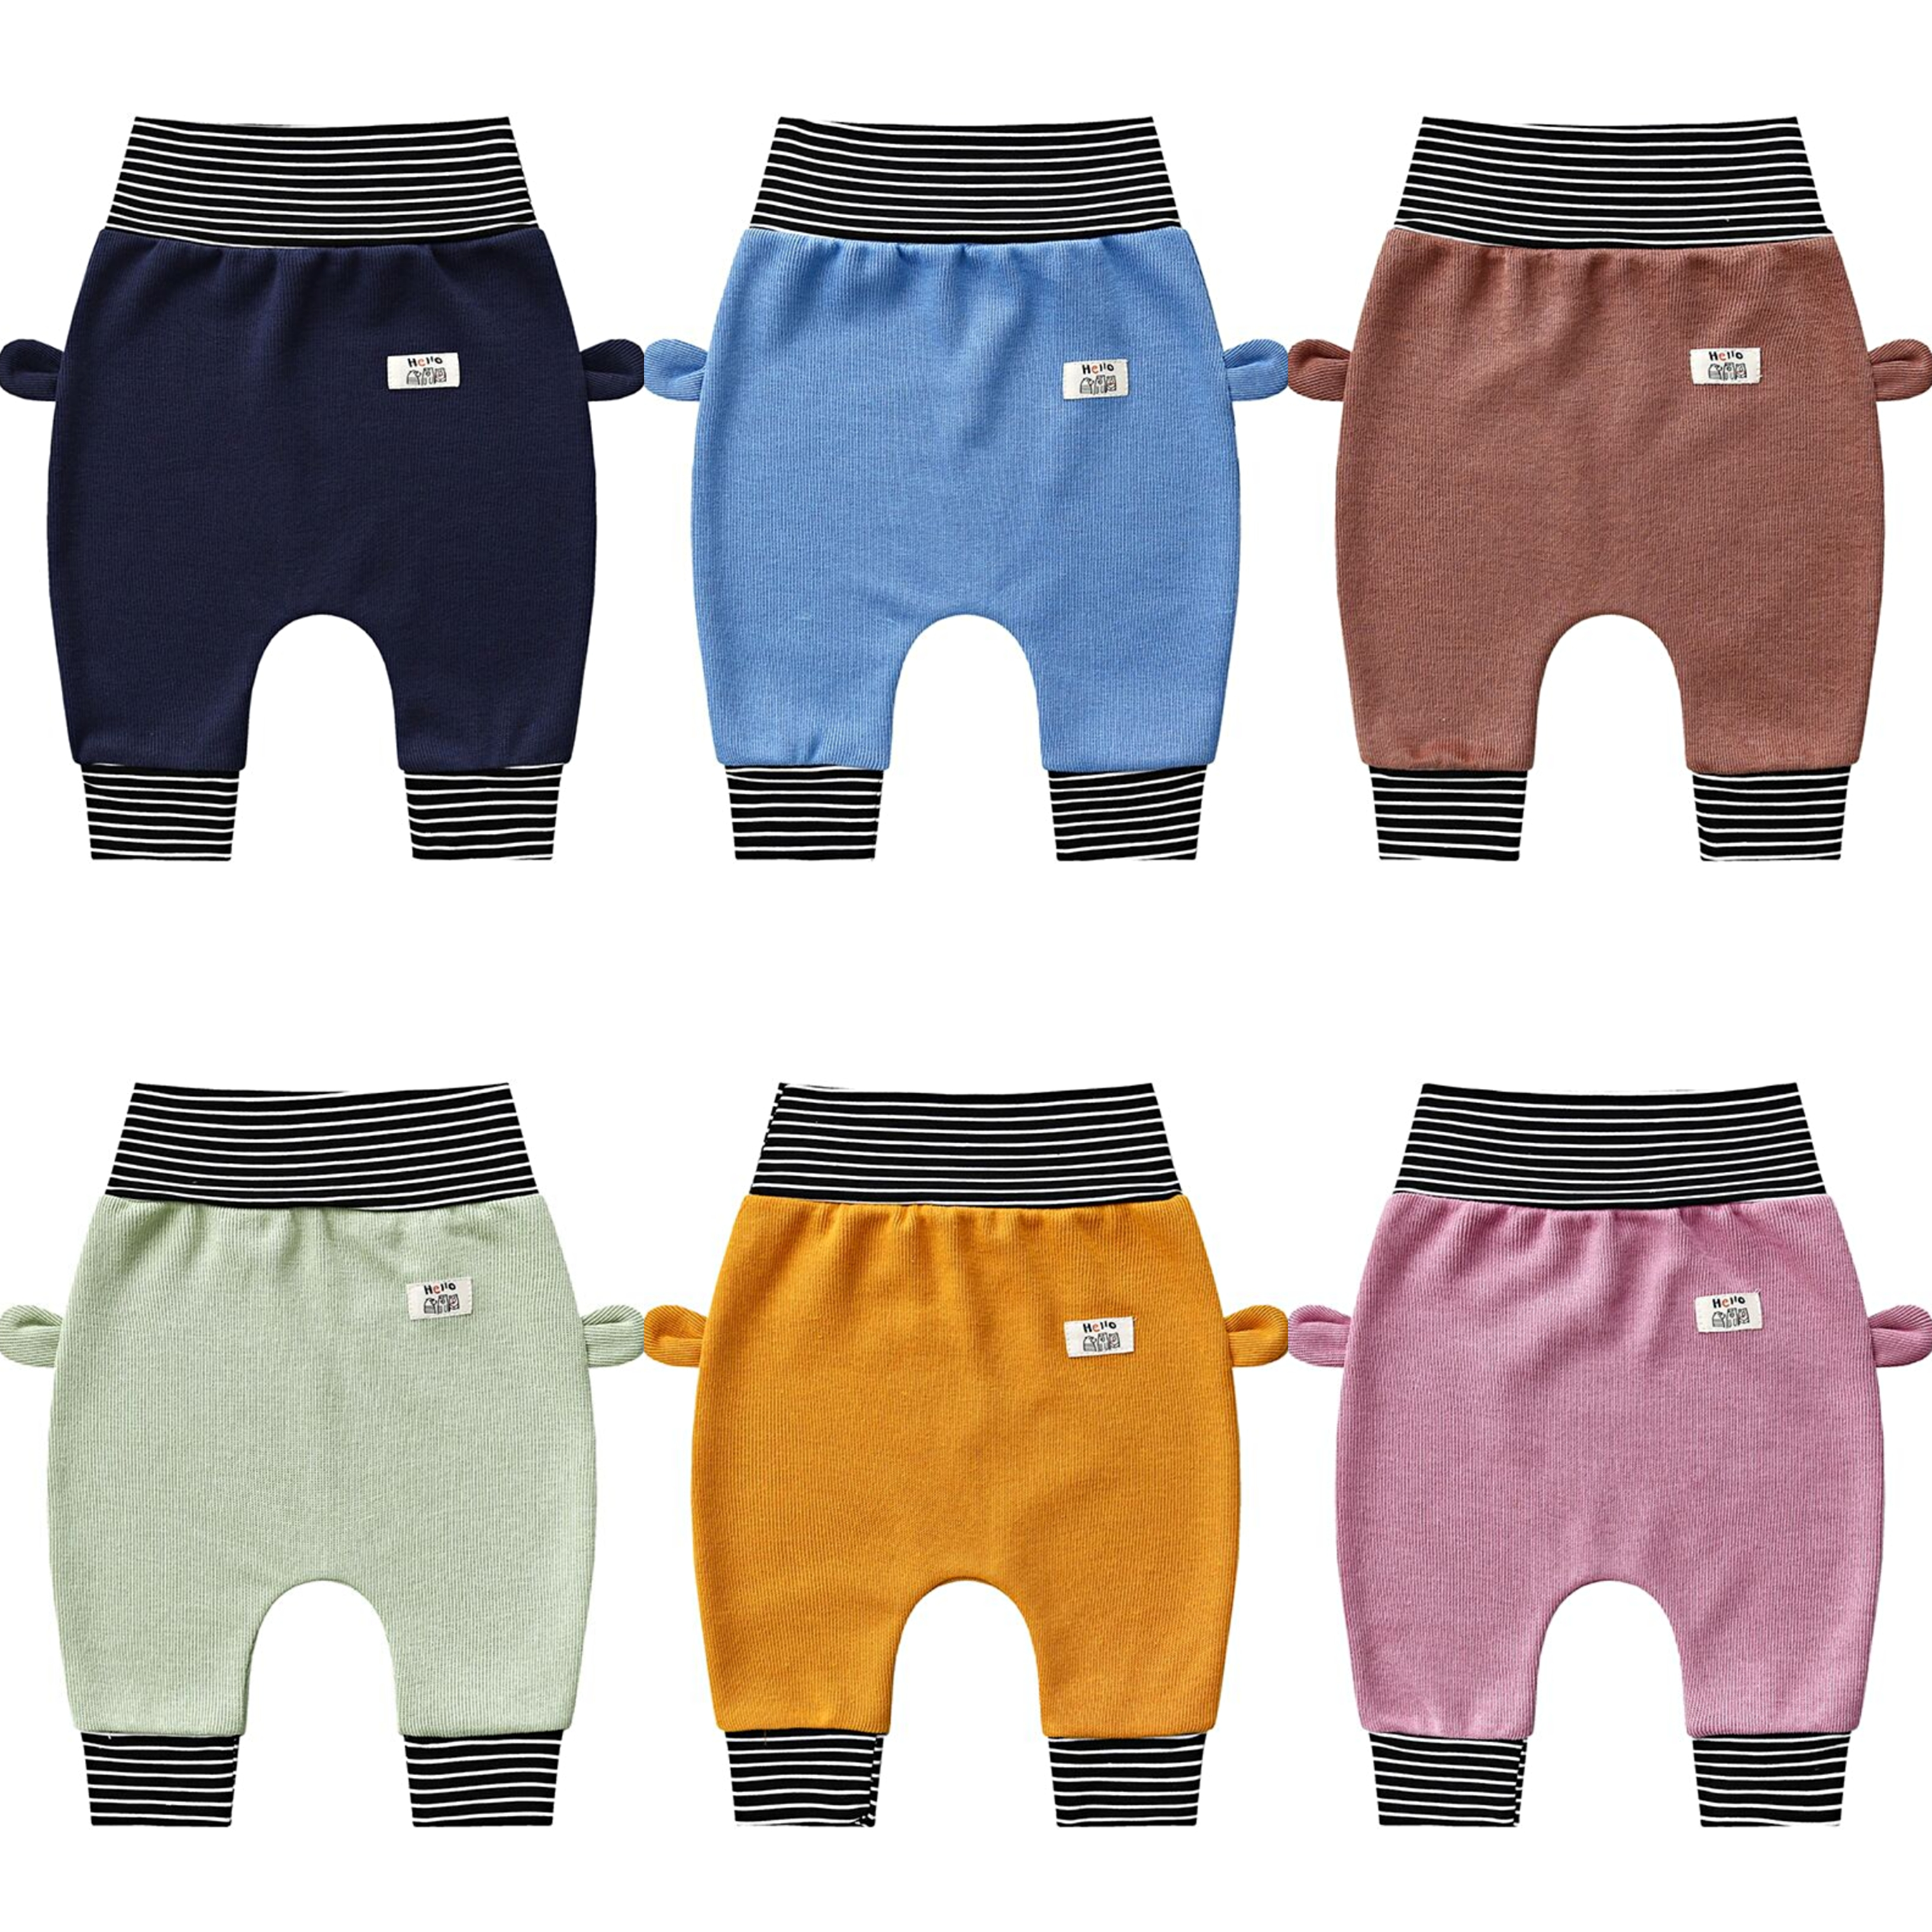 Baby cute pants Fashion knitting boys girl high waist protection belly children toddler spring autumn newborn infant trousers